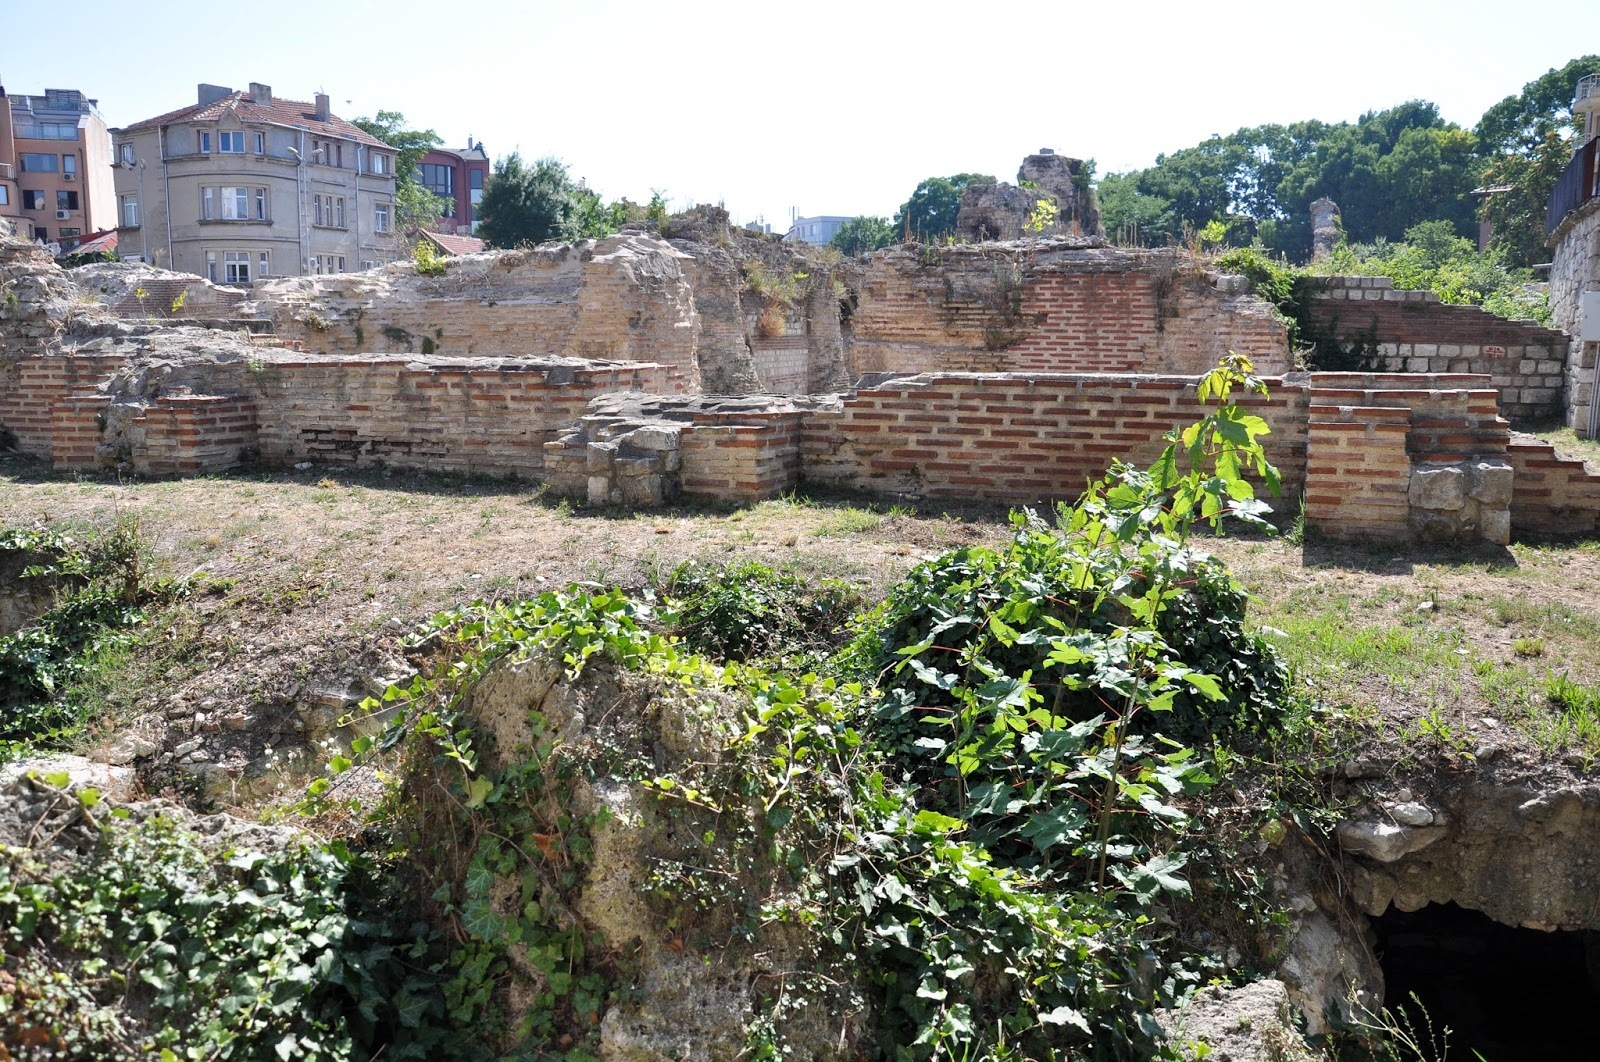 Ancient ruins surrounded by contemporary buildings, The Roman Thermae, Varna, Bulgaria